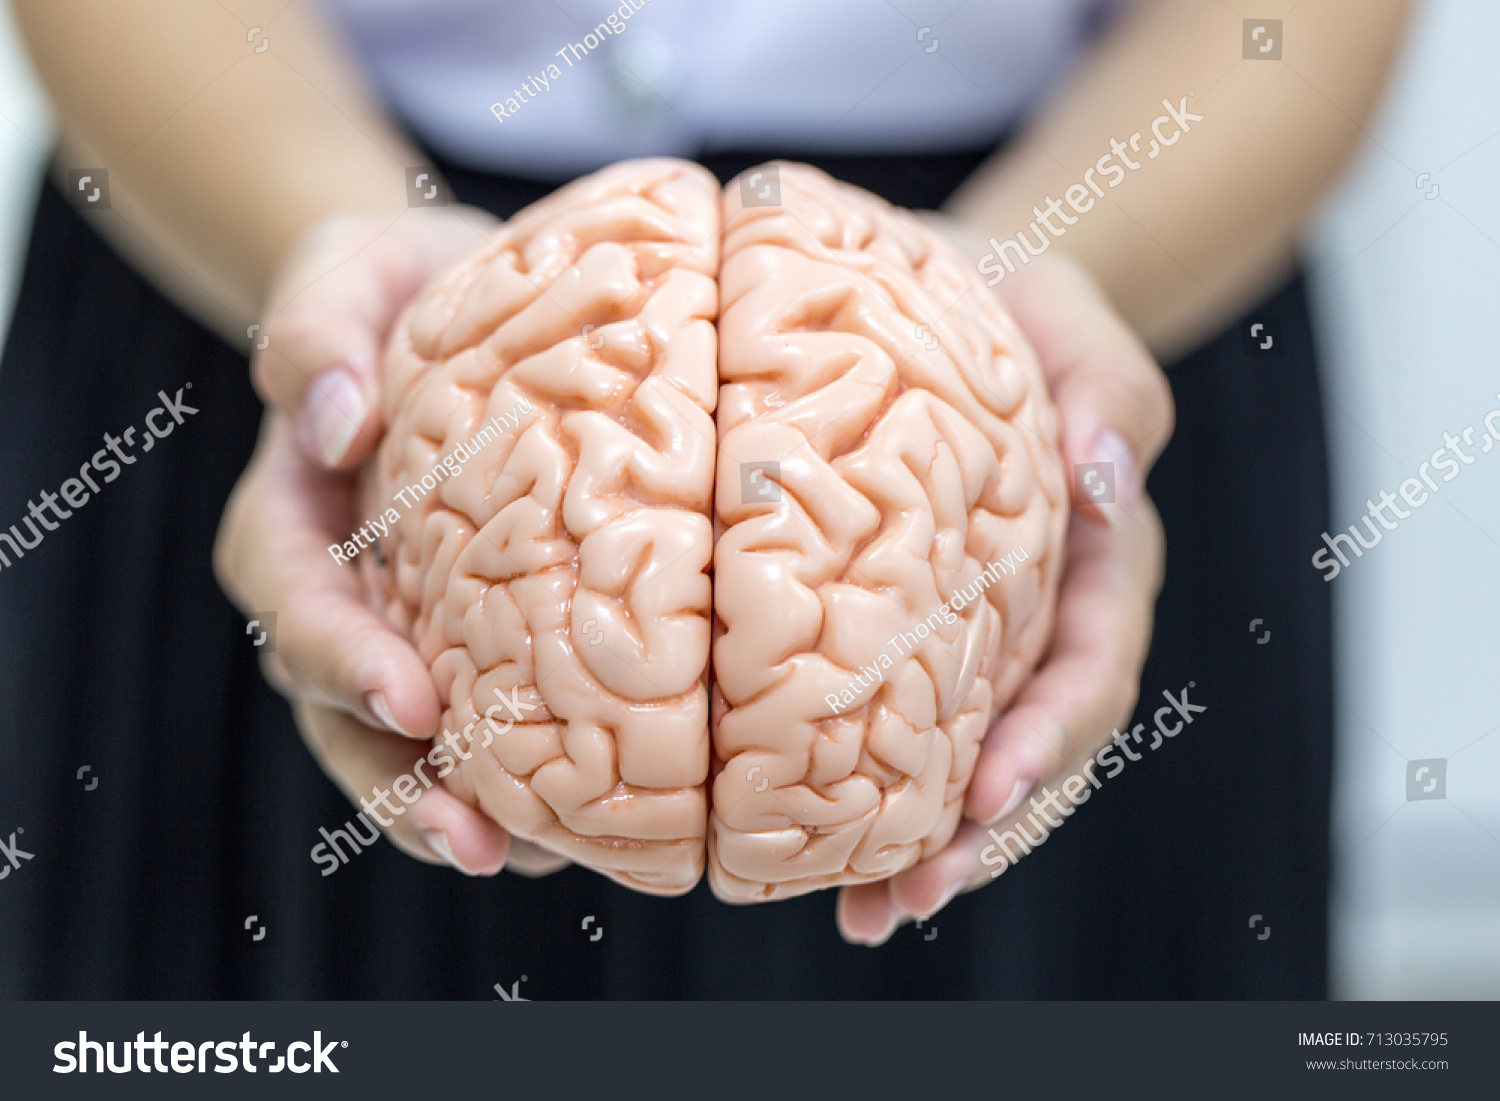 Human Brain Model Education Laboratory Stock Photo Safe To Use